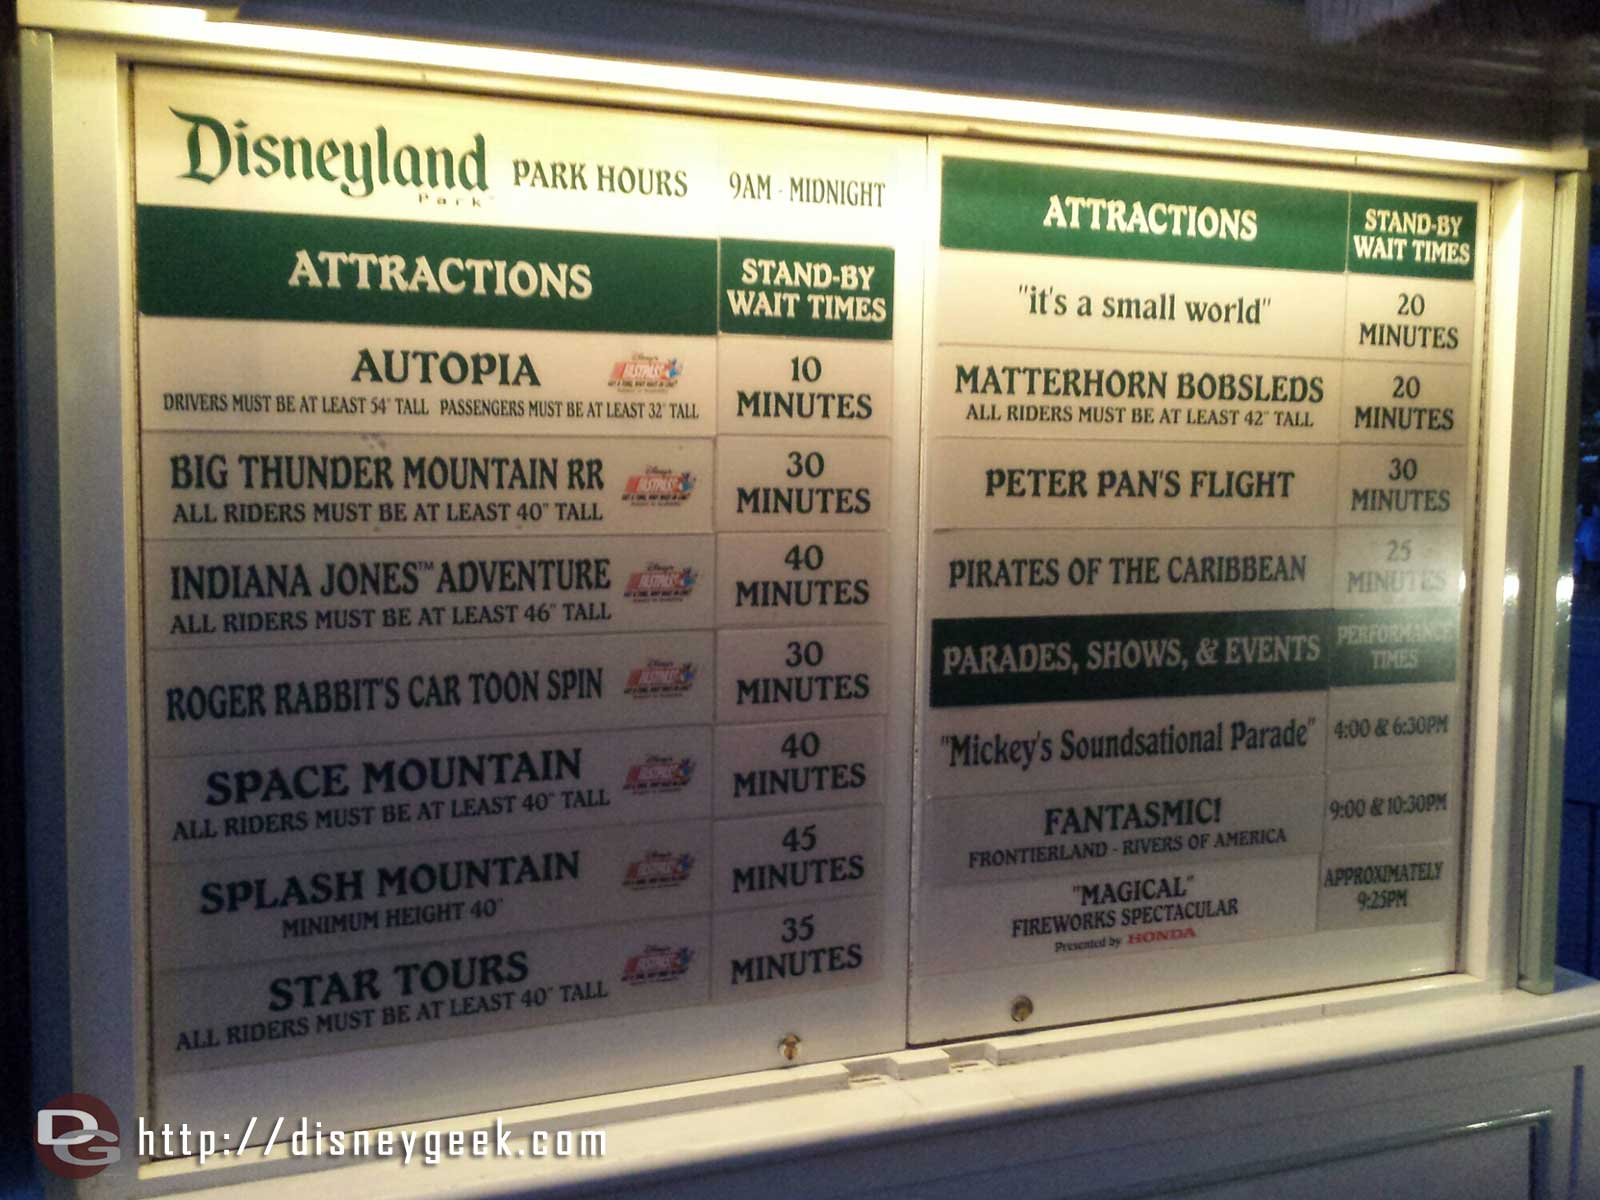 #Disneyland waits as of 7:40pm longest posted is 45min for Splash Mountain